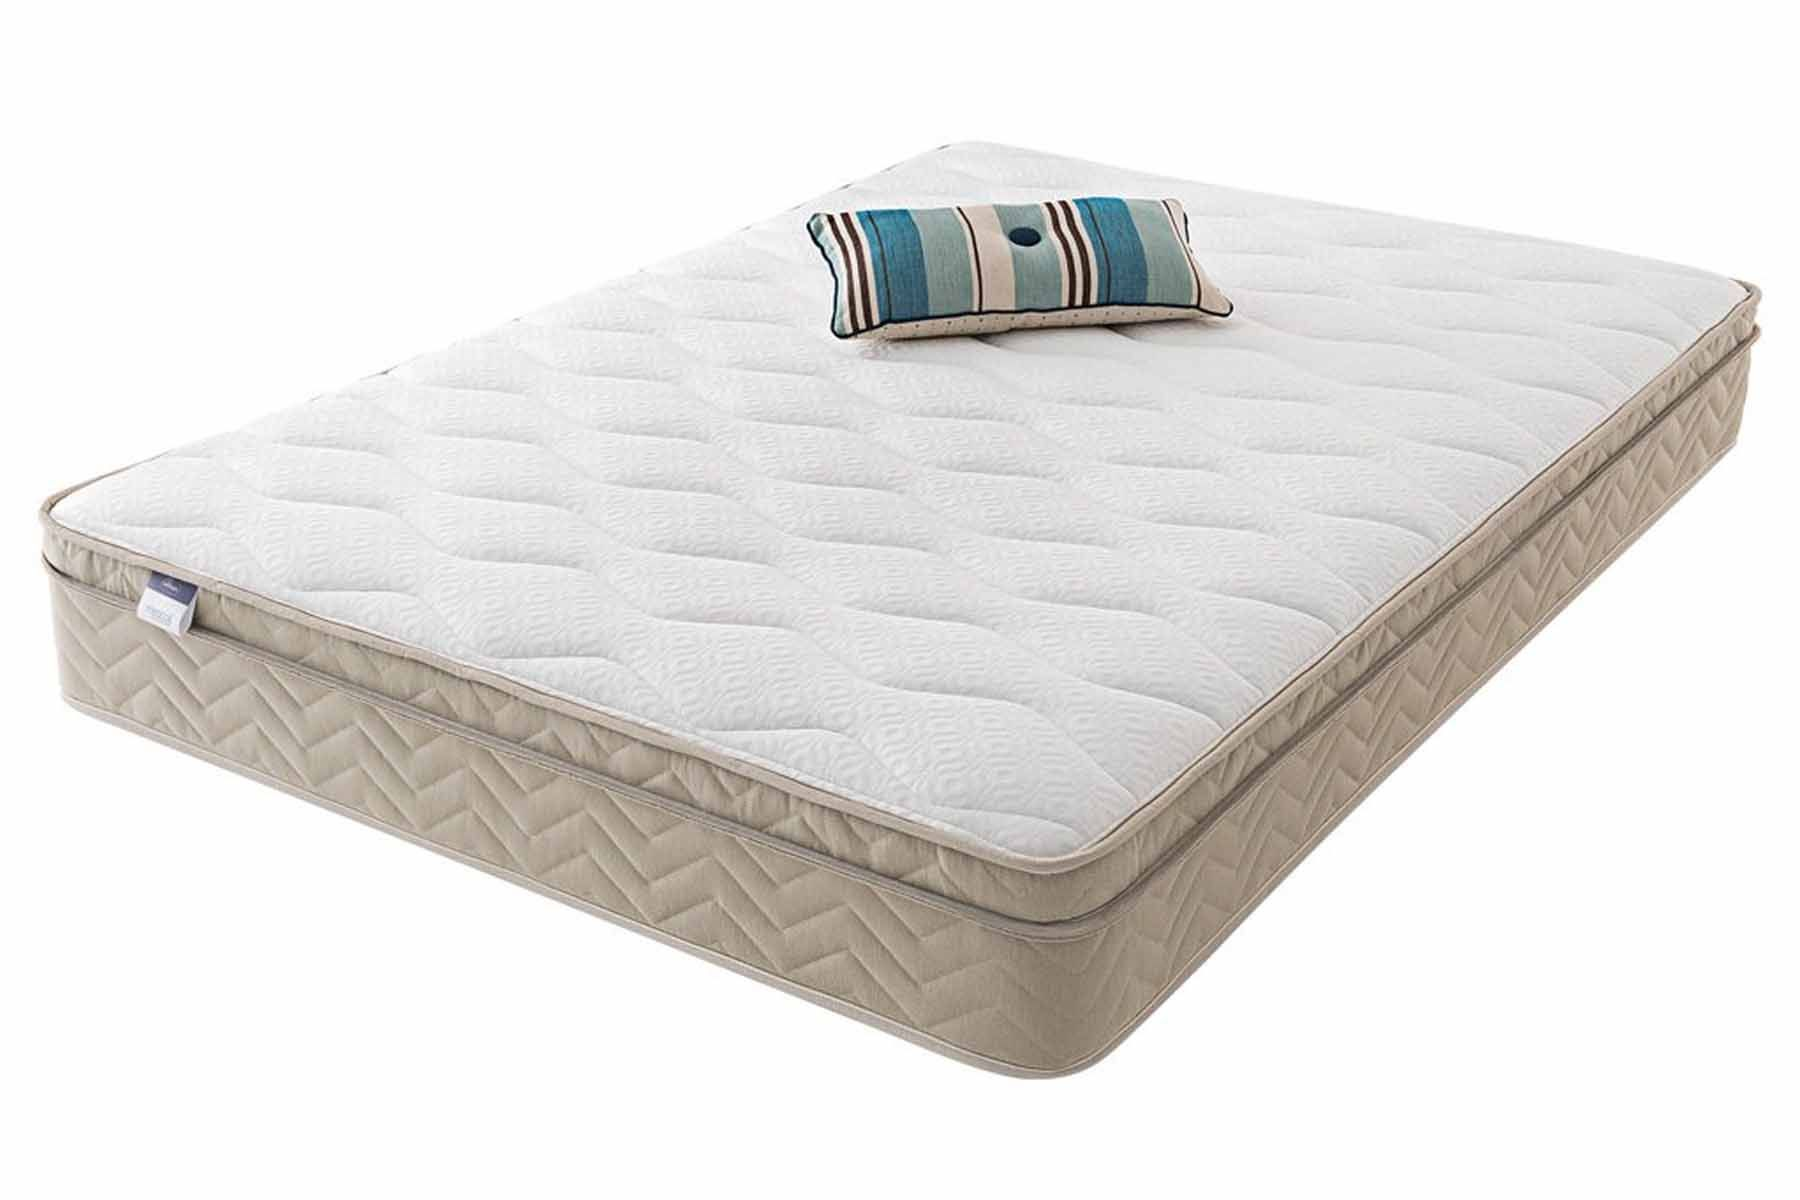 Silentnight Allure Limited Edition Miracoil Cushion Top Mattress